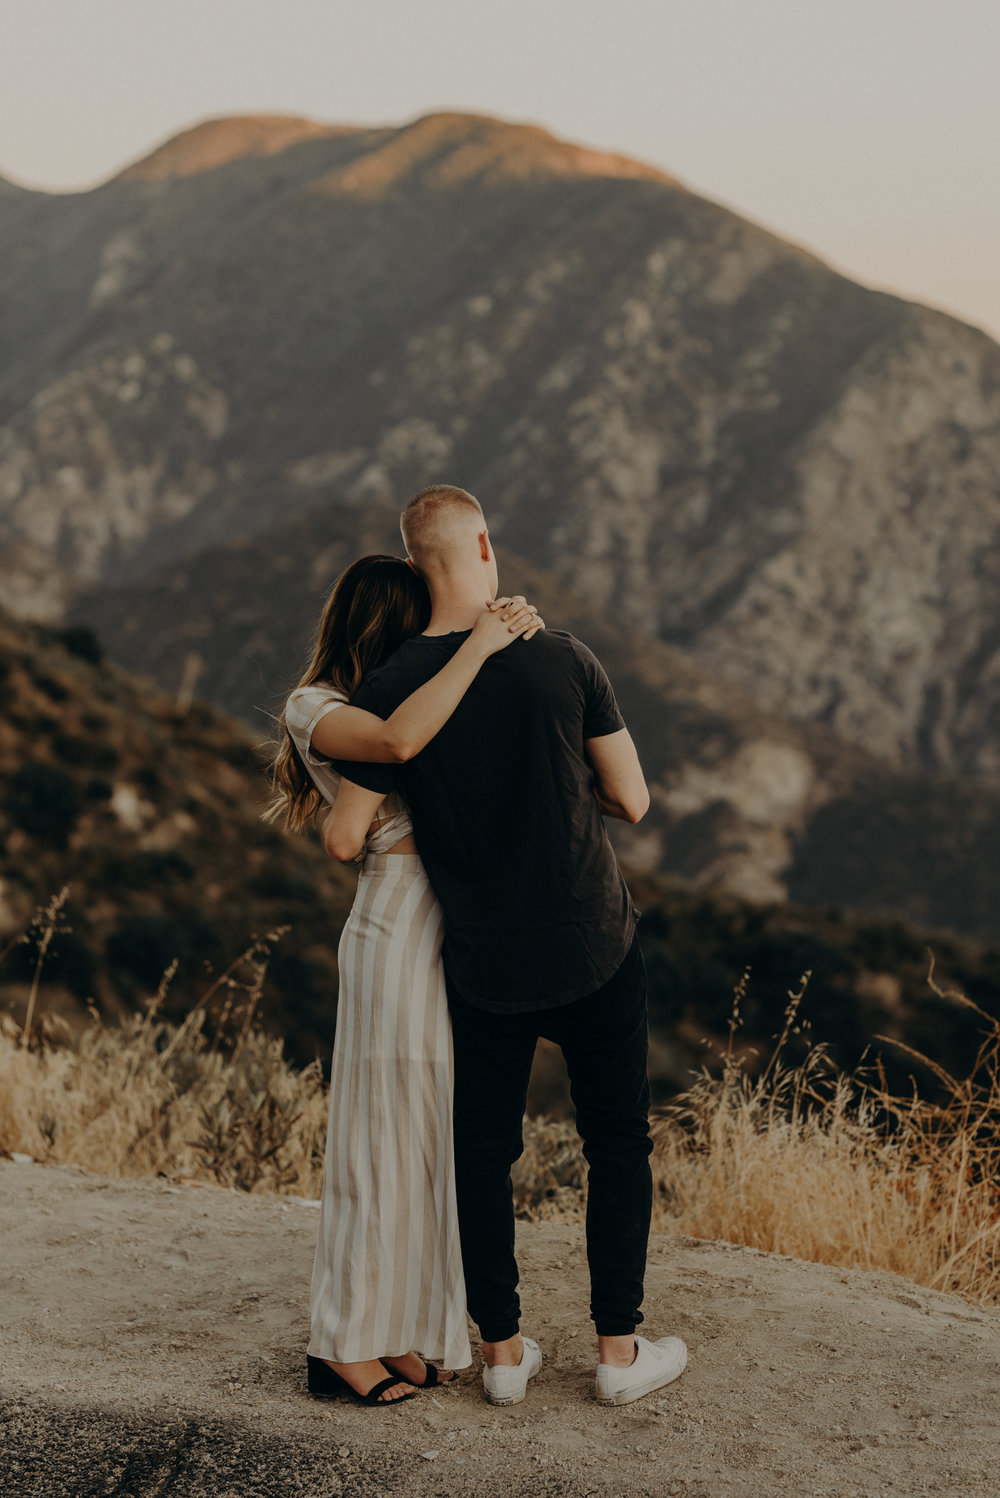 Isaiah + Taylor Photography - Los Angeles Mountain Engagement Photographer-007.jpg